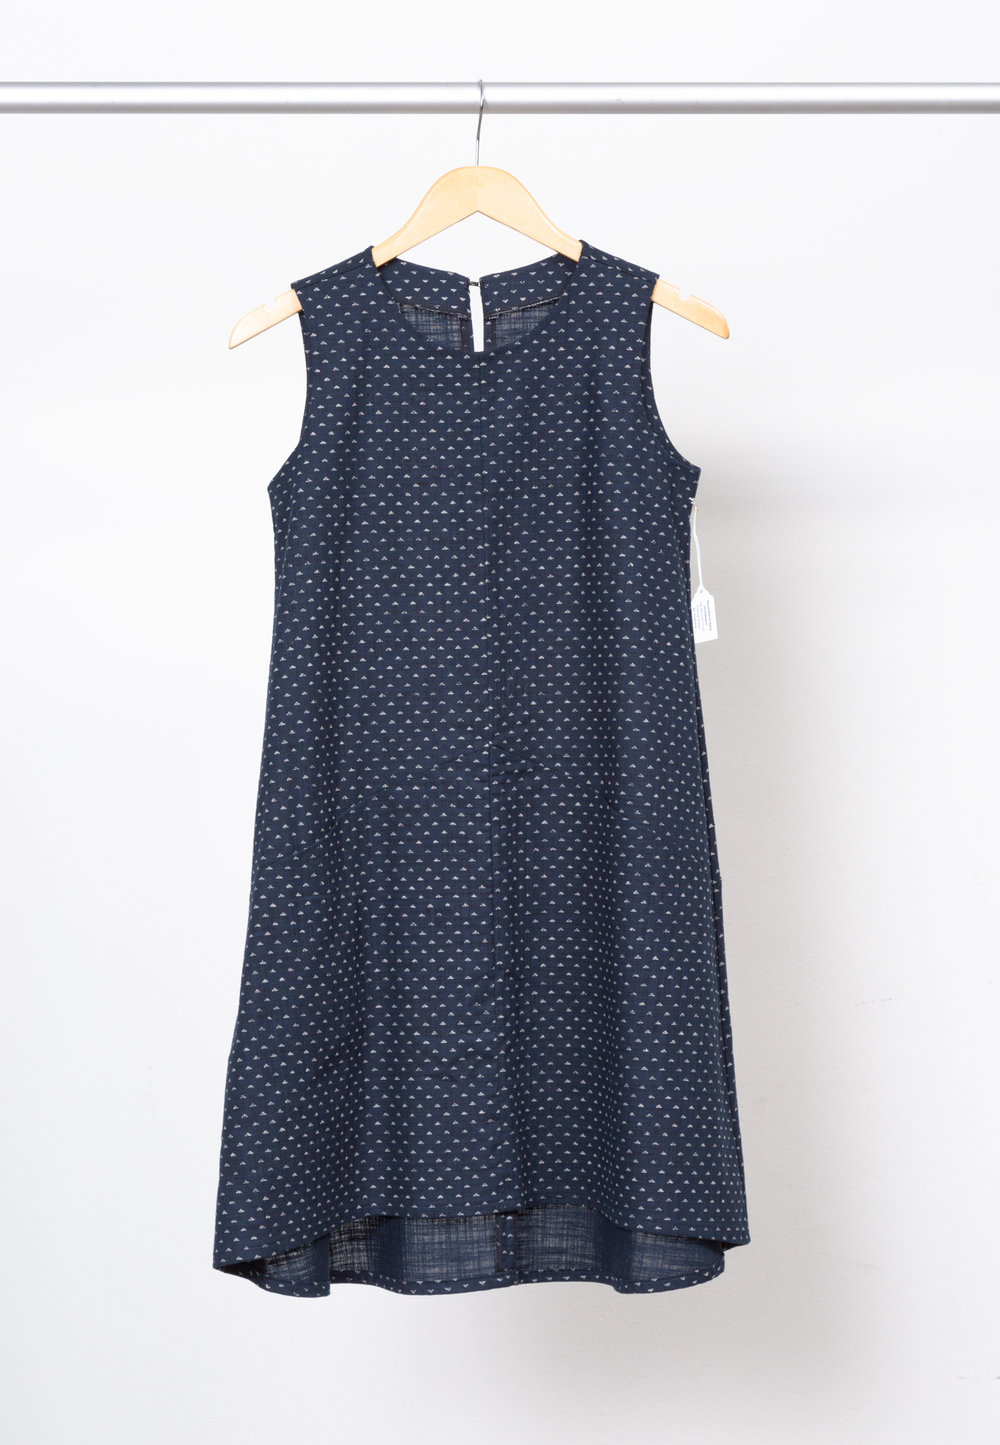 FARROW DRESS   BY     GRAINLINE STUDIO ,  SEVENBERRY: NARA HOMESPUN